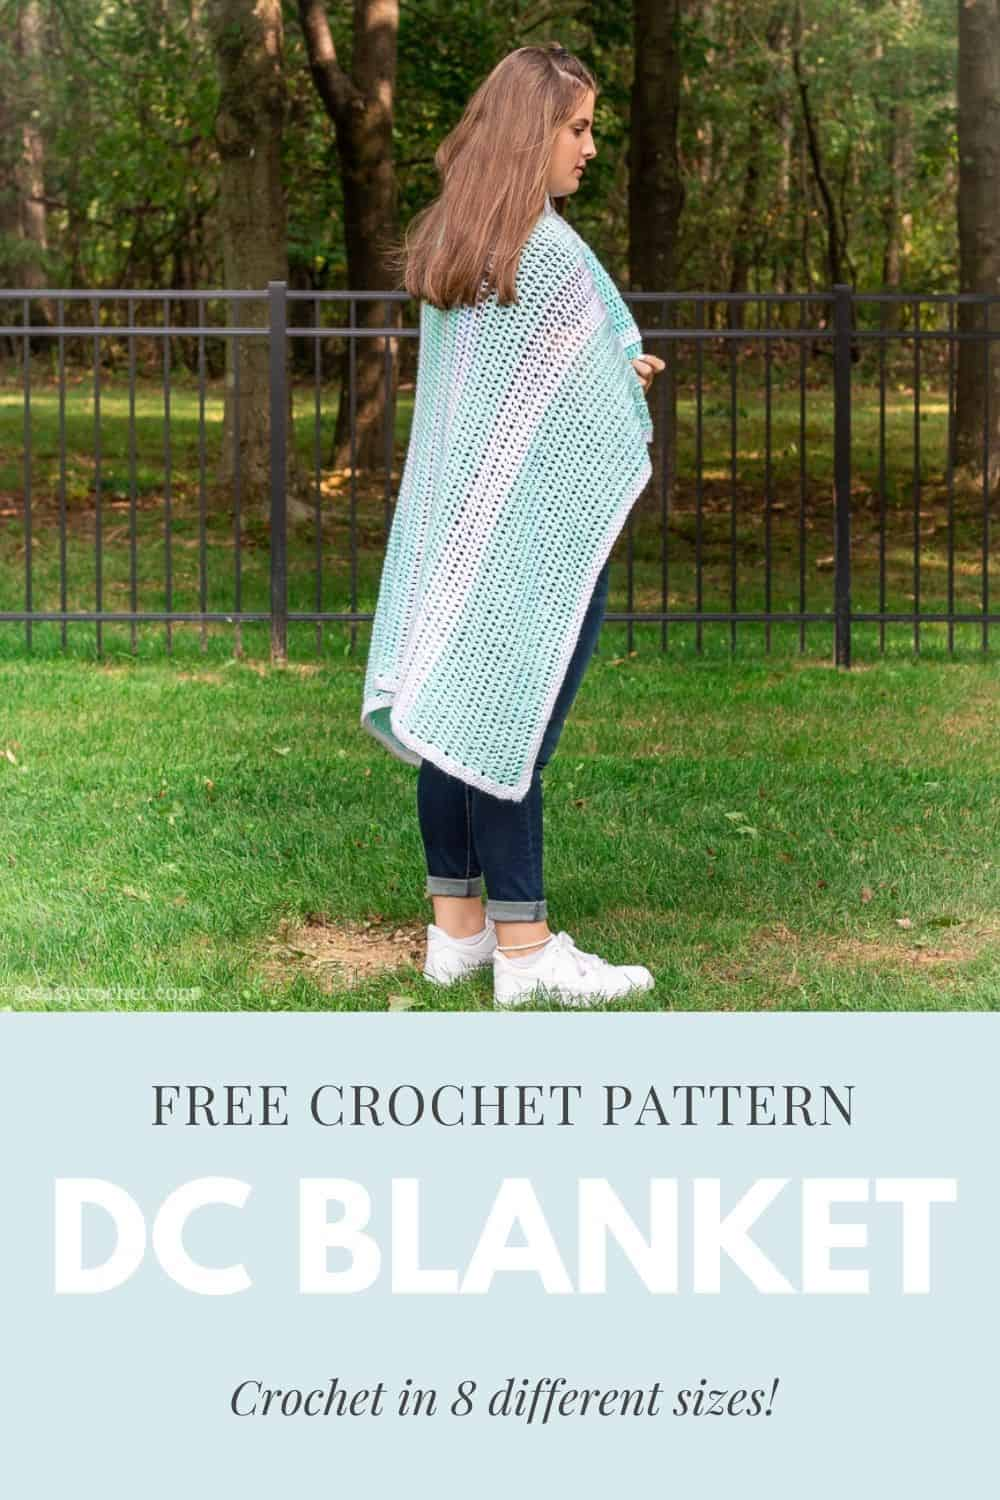 Crochet this quick & easy double crochet blanket pattern using medium weight yarn! Pattern includes eight different sizes and works up fast! Free from easycrochet.com via @easycrochetcom